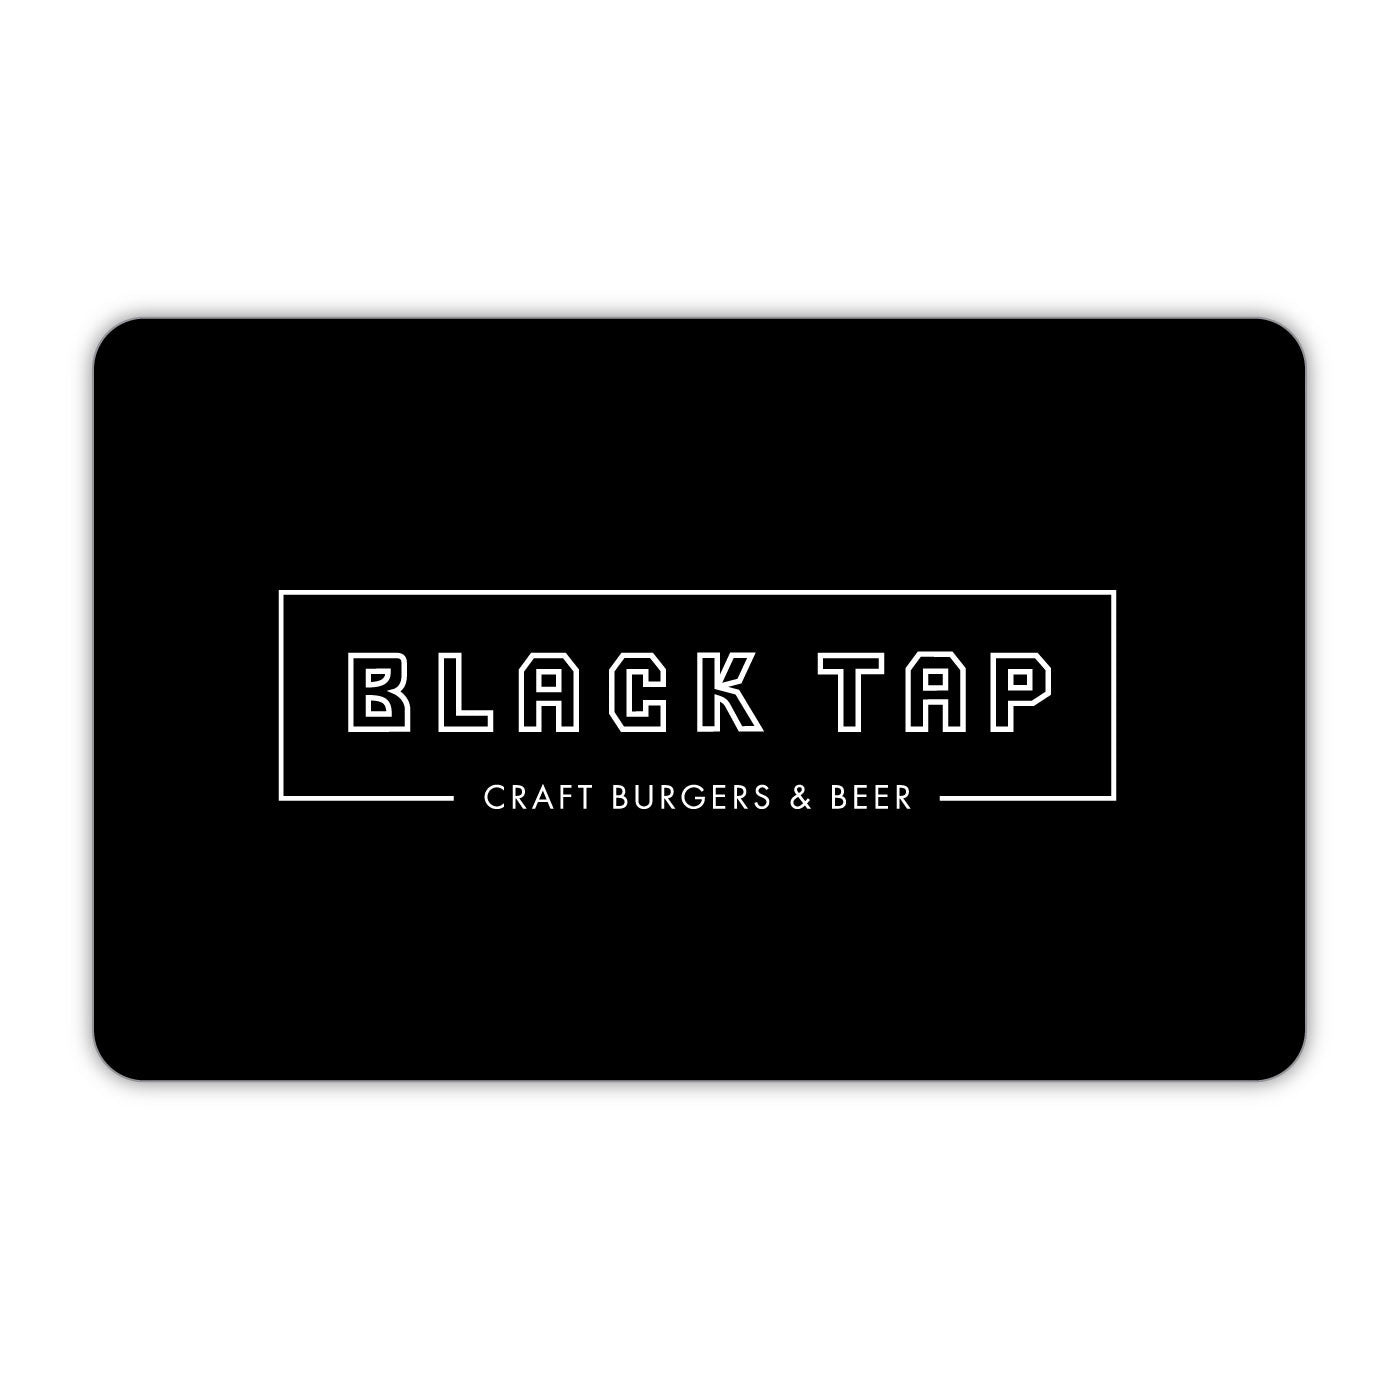 black tap gift card valid to use at our NYC locations. Purchase amounts are $25, $50, $75, $100, $125, $150, $175, $200